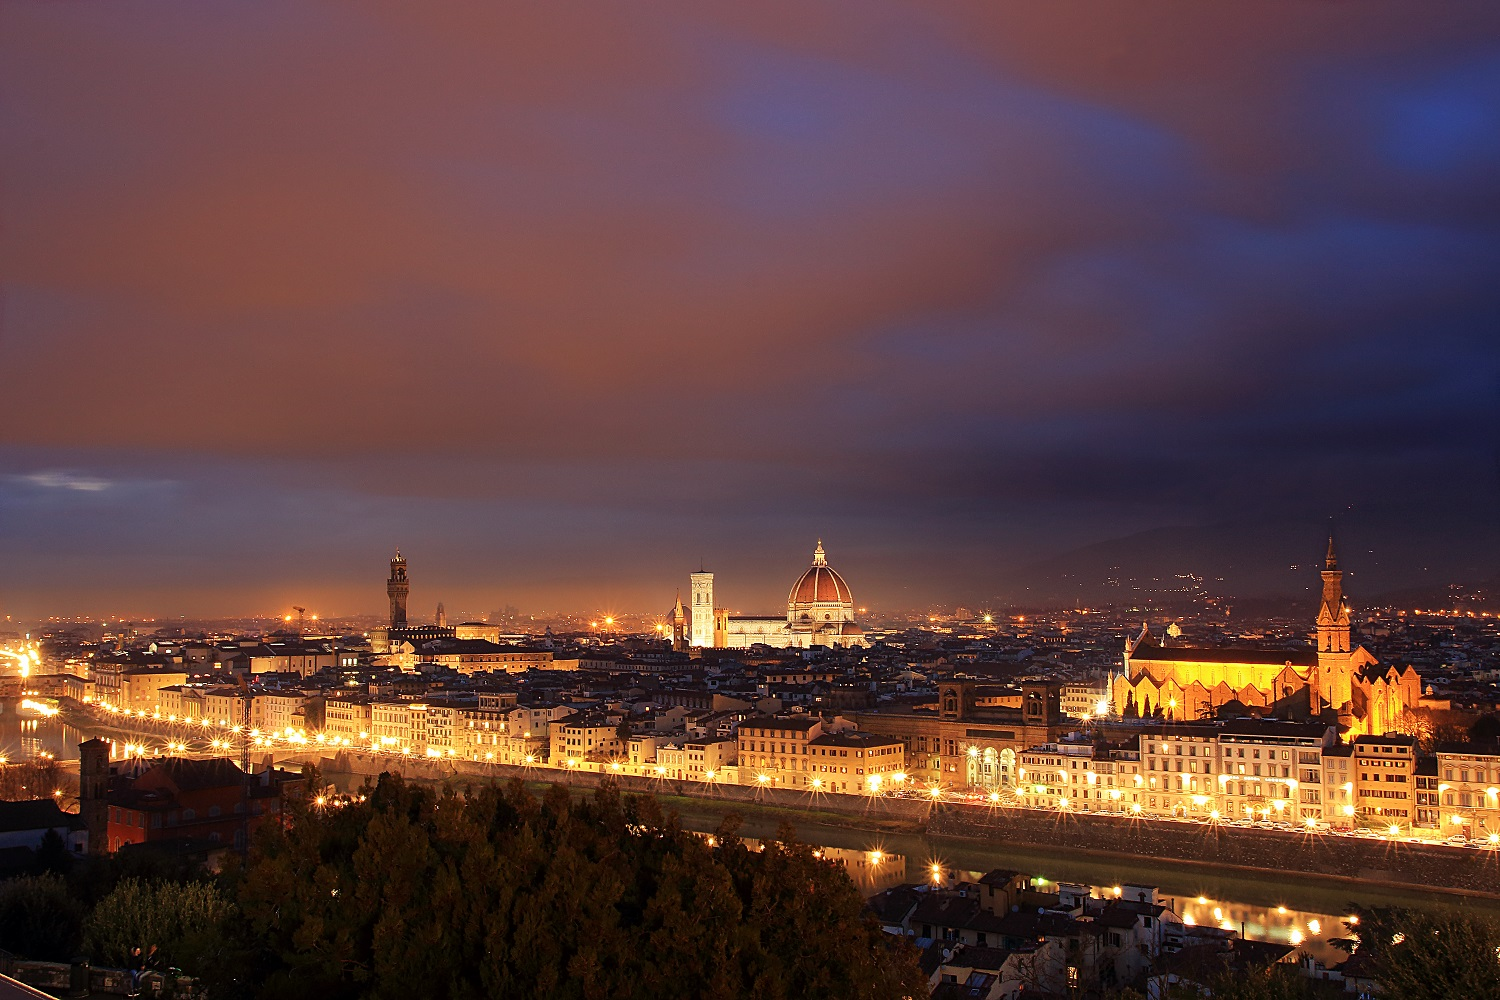 One evening in Florence...